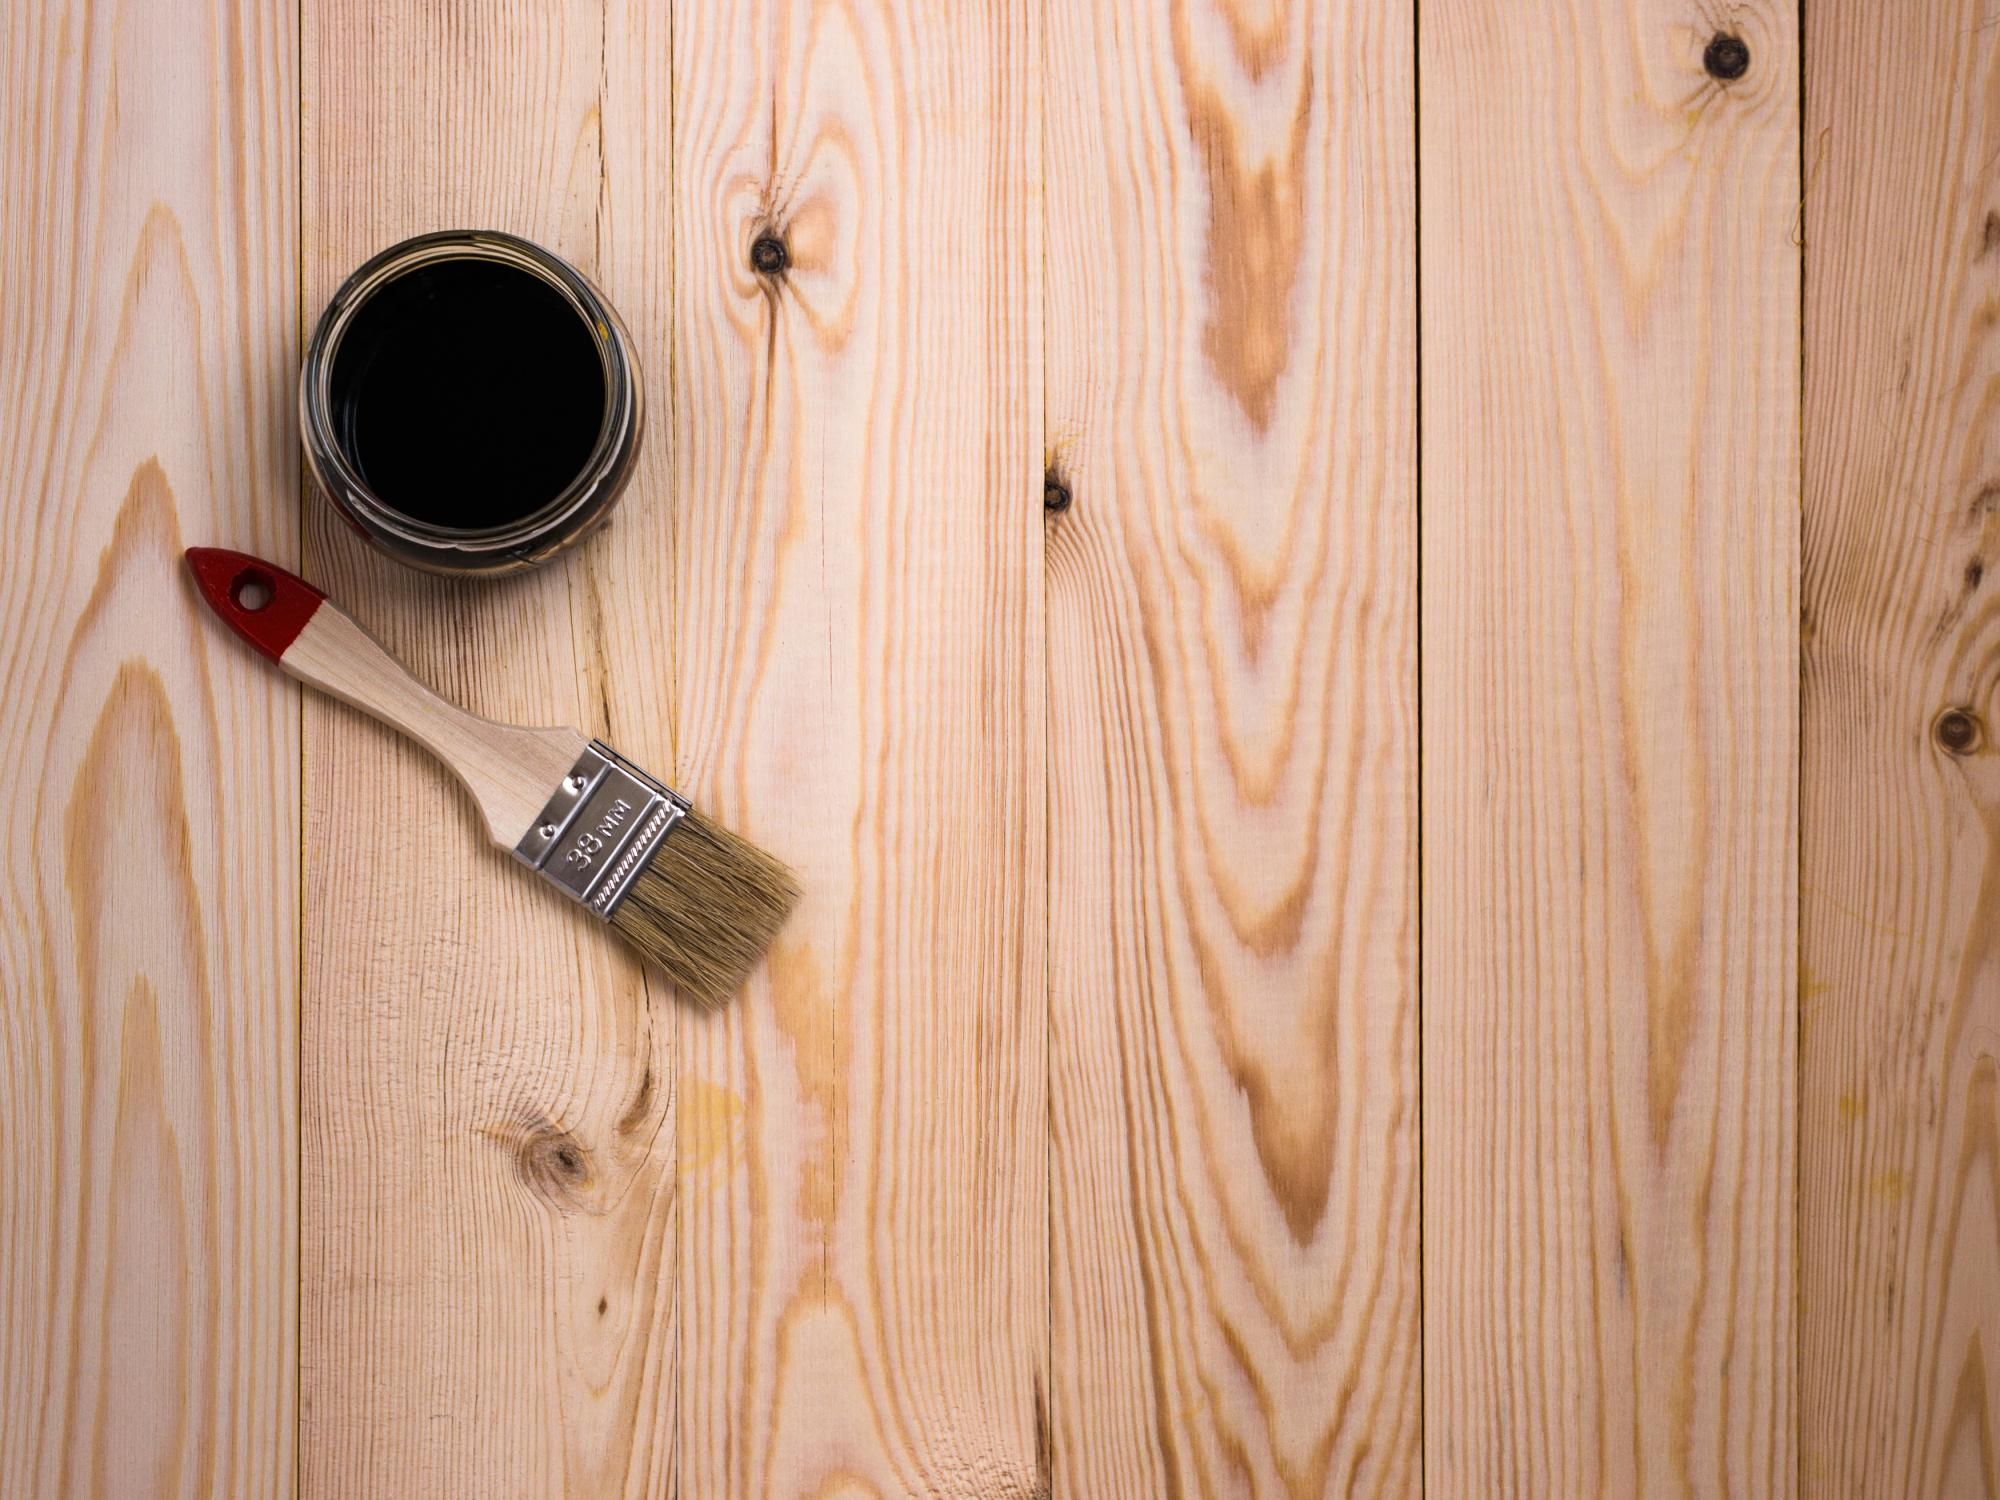 This is a picture of a house staining.